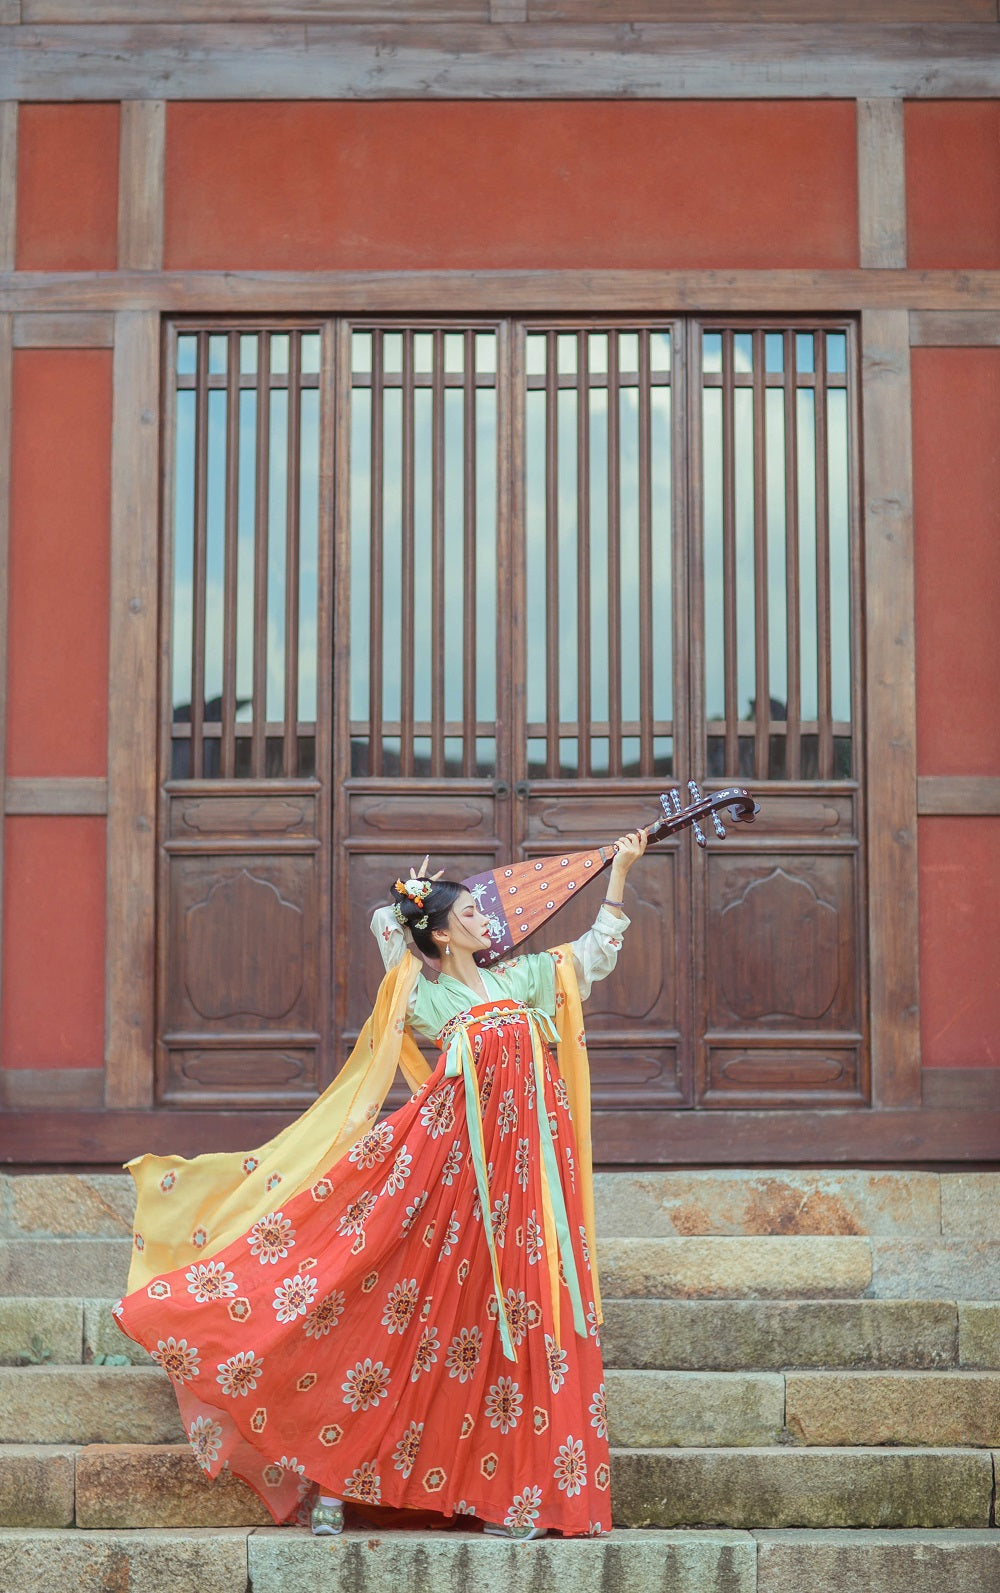 Handmade Embroidery Floral Women Hanfu Dress Cosplay Costume Vintage Stage Show Clothes 3 Pieces Set - YUHUAN